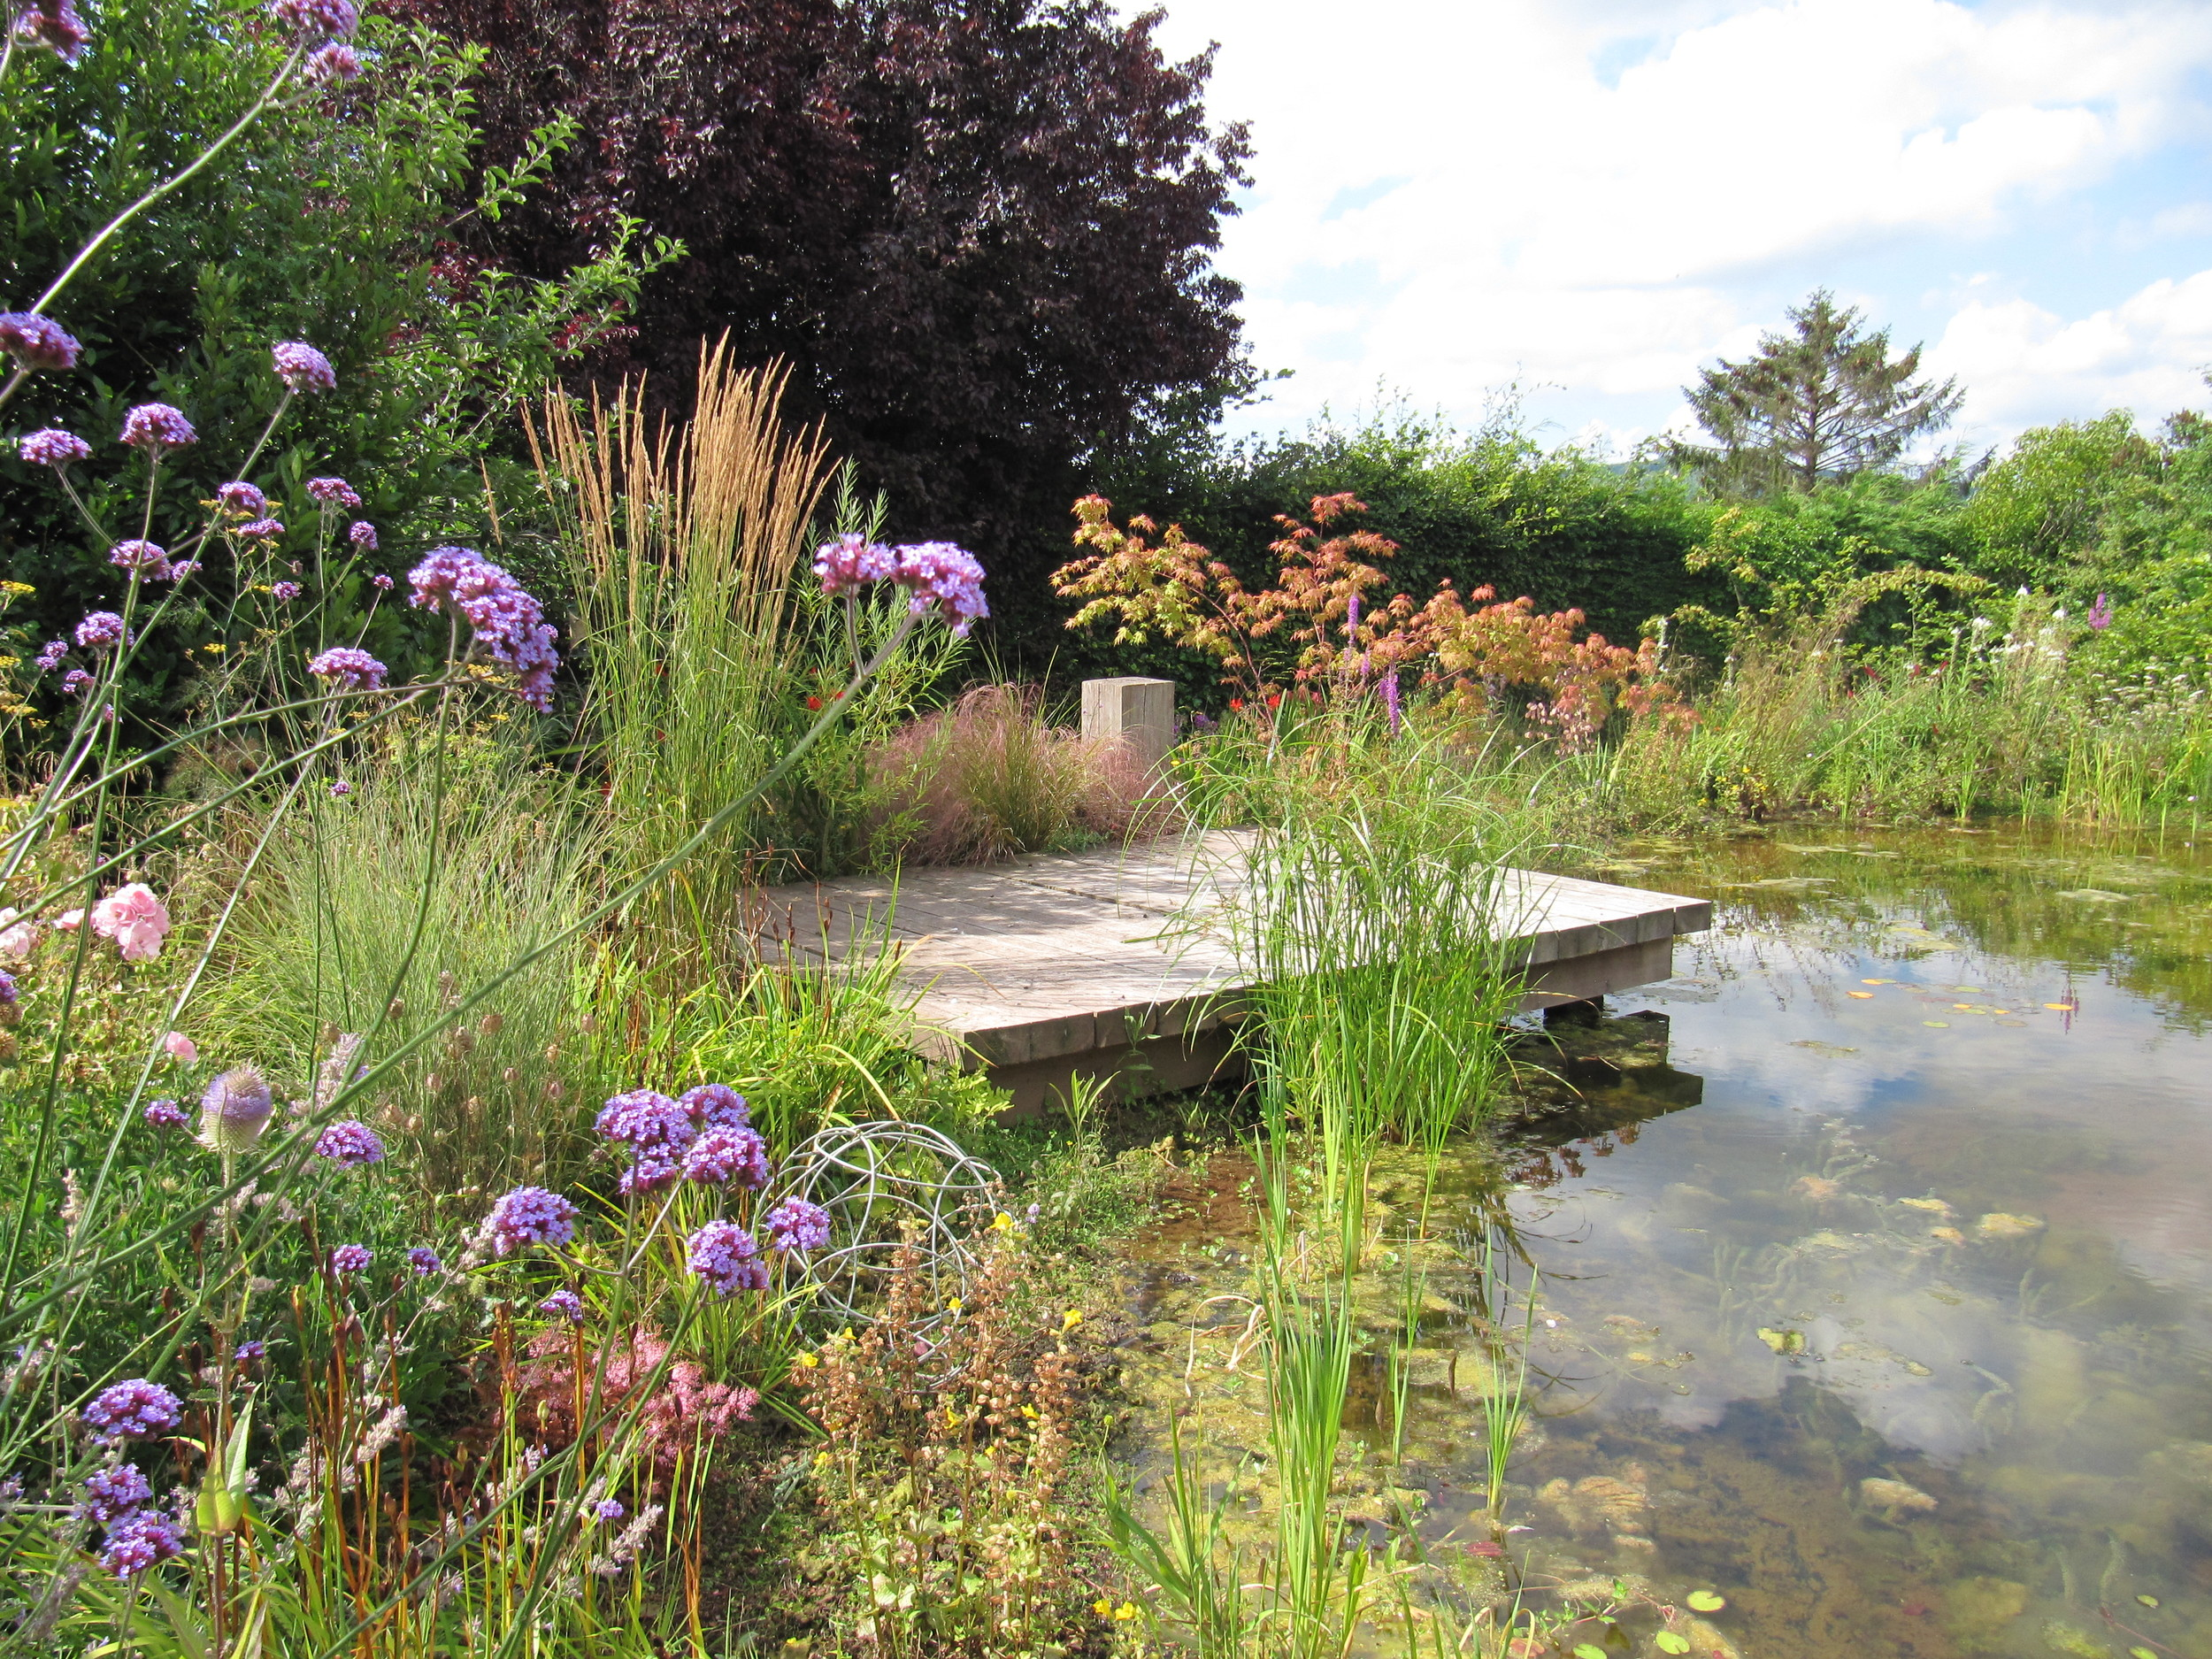 A pond designed to benefit wildlife with a timber deck for 'dipping'.